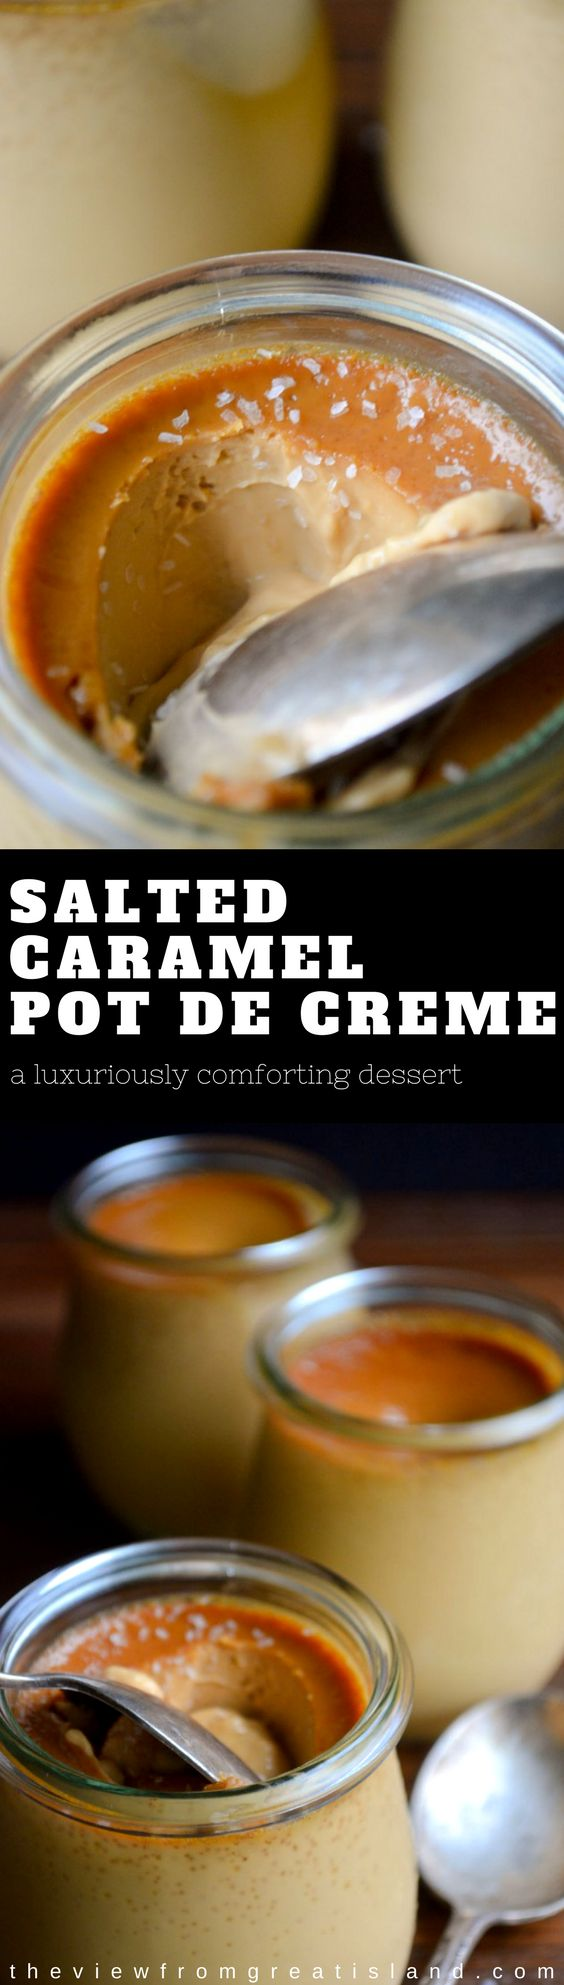 Salted Caramel Pot de Crème ~this is a luxuriously comforting dessert, and even though it's made with heavy cream, it's delivered in small enough little glasses that you really don't have to feel bad about it at all. #romantic #dessert #pudding #flan #custard #potdecreme #butterscotch #caramel #saltedcaramel